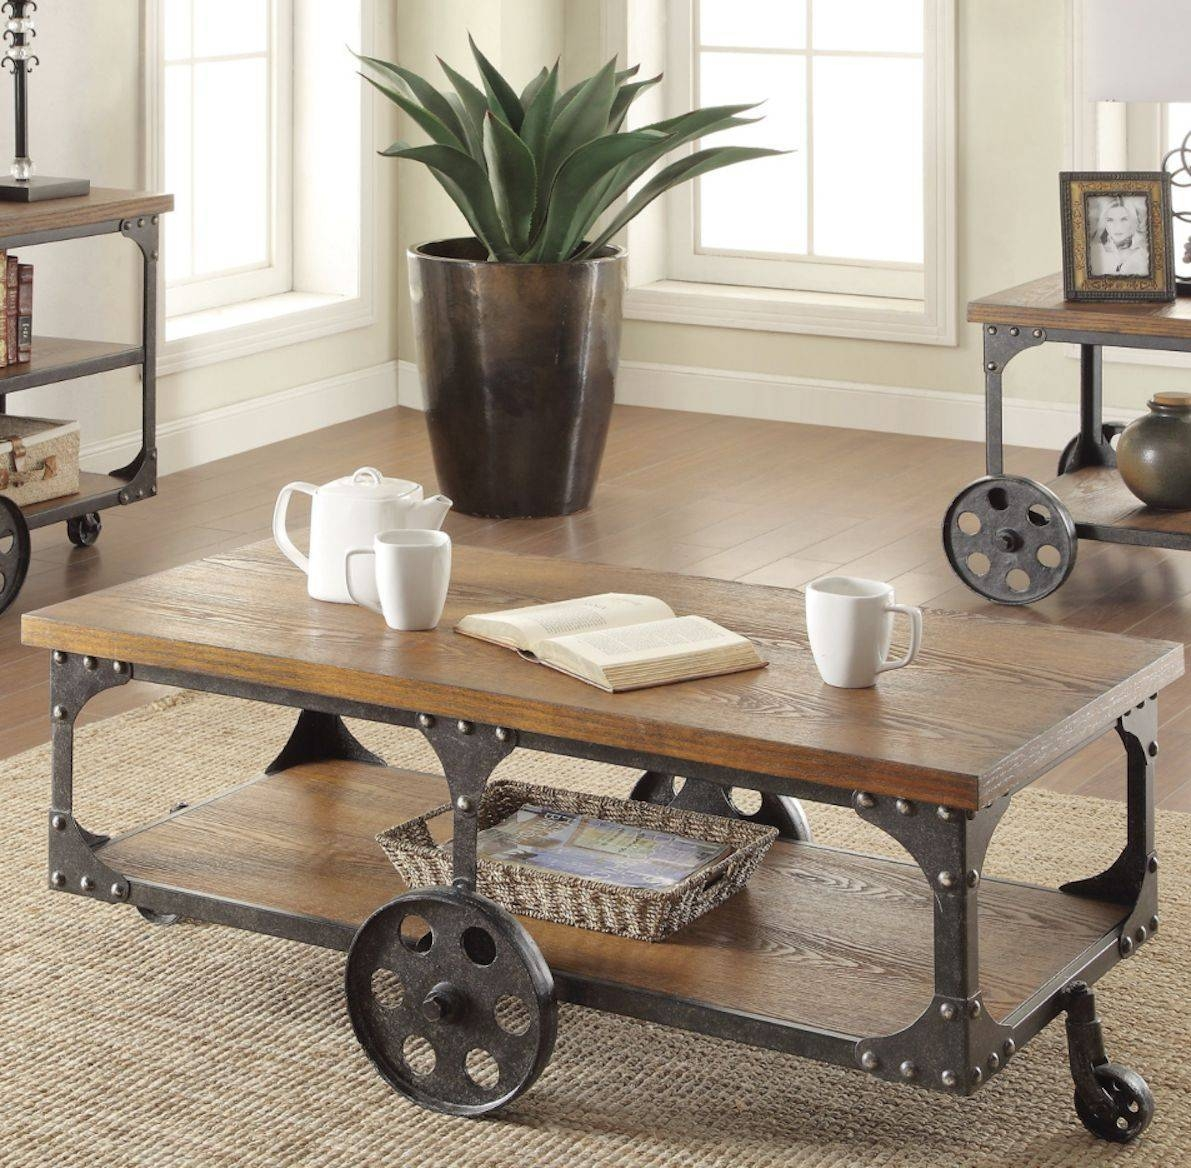 Industrial Coffee Table Utility Cart Storage Console Rustic Wood For Coffee Tables And Tv Stands Matching (Photo 7 of 30)